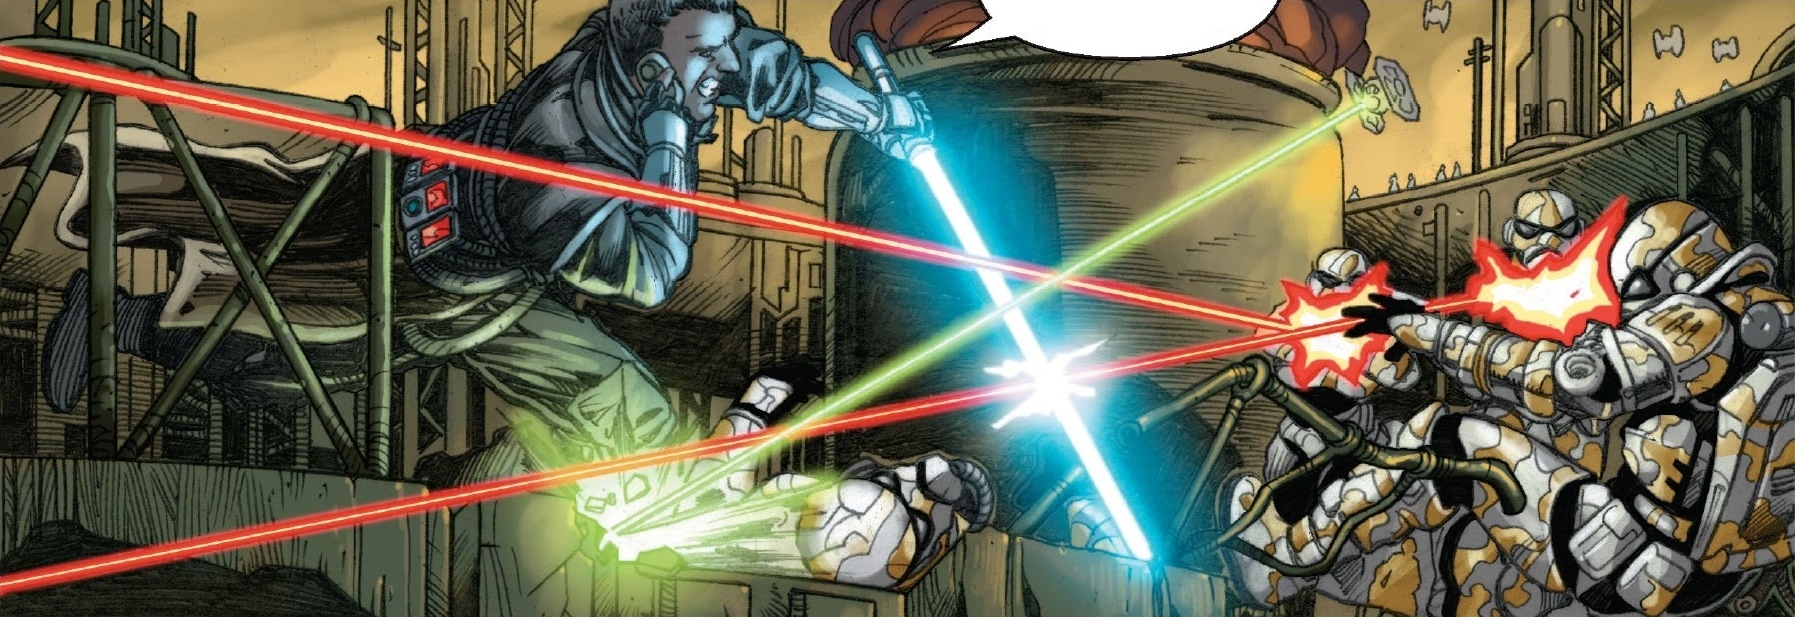 Star Wars The Force Unleashed Comic